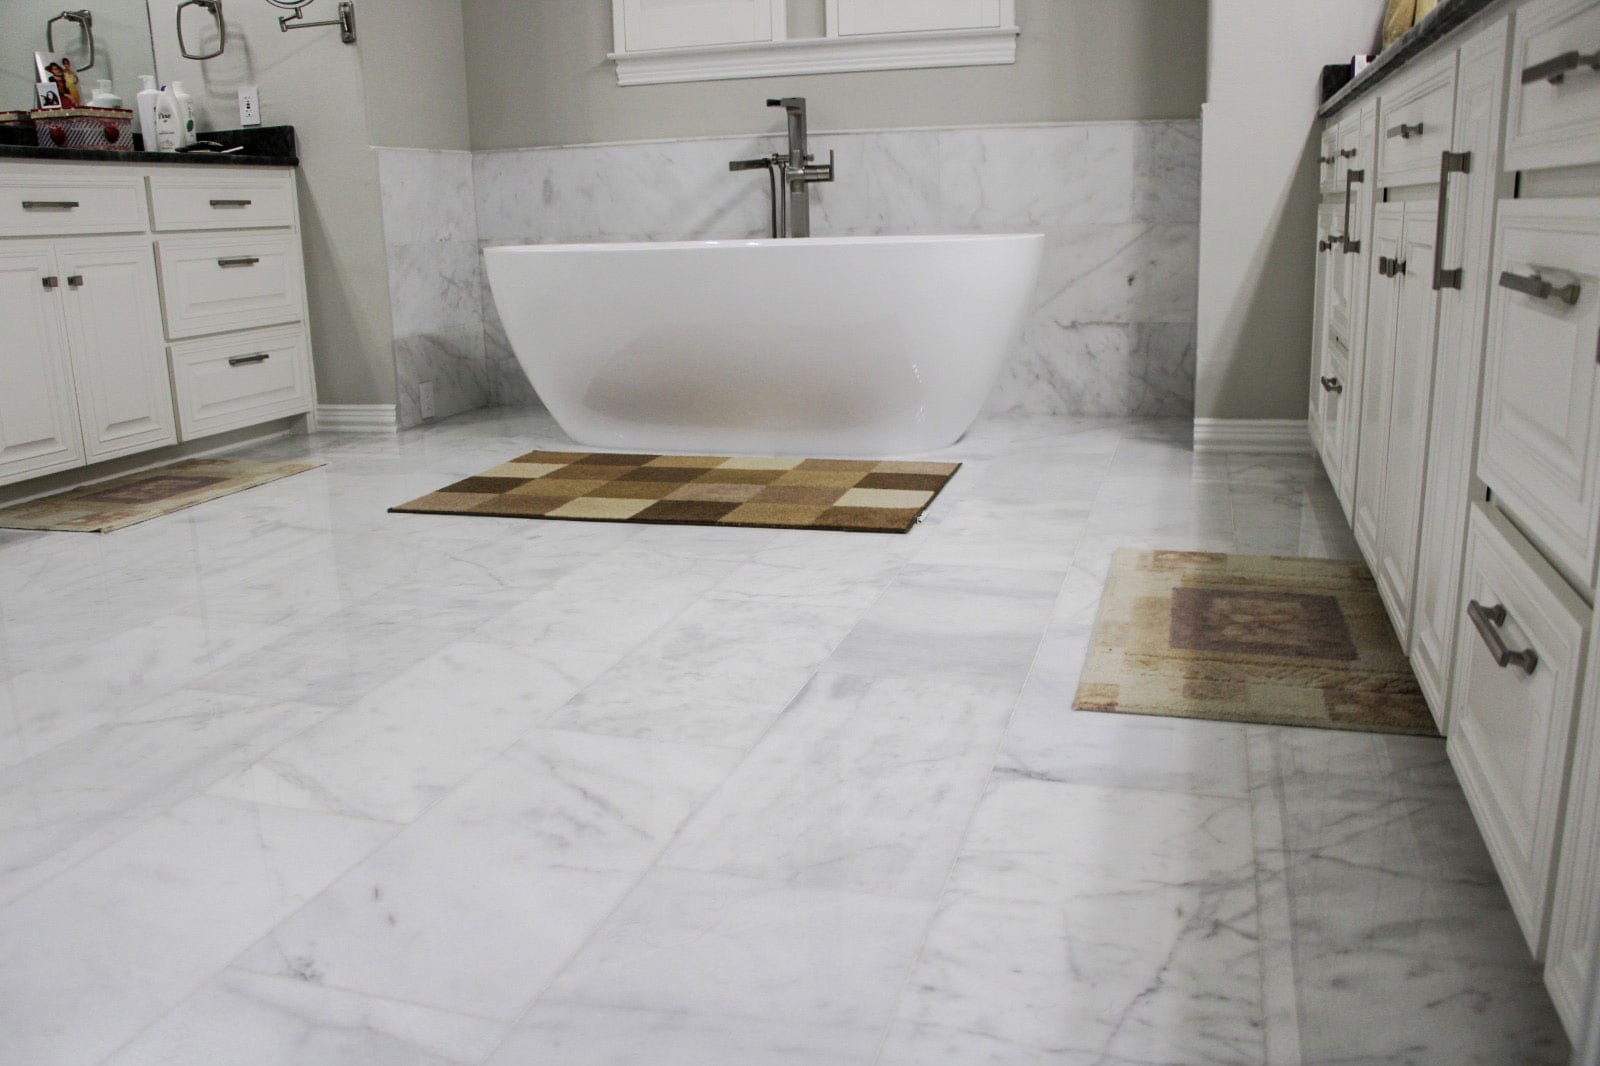 Stoneline-Group-Dolomite-Marble-Collection-Marble-Tile-Floor-Marble-Design-Bathroom-Pictures